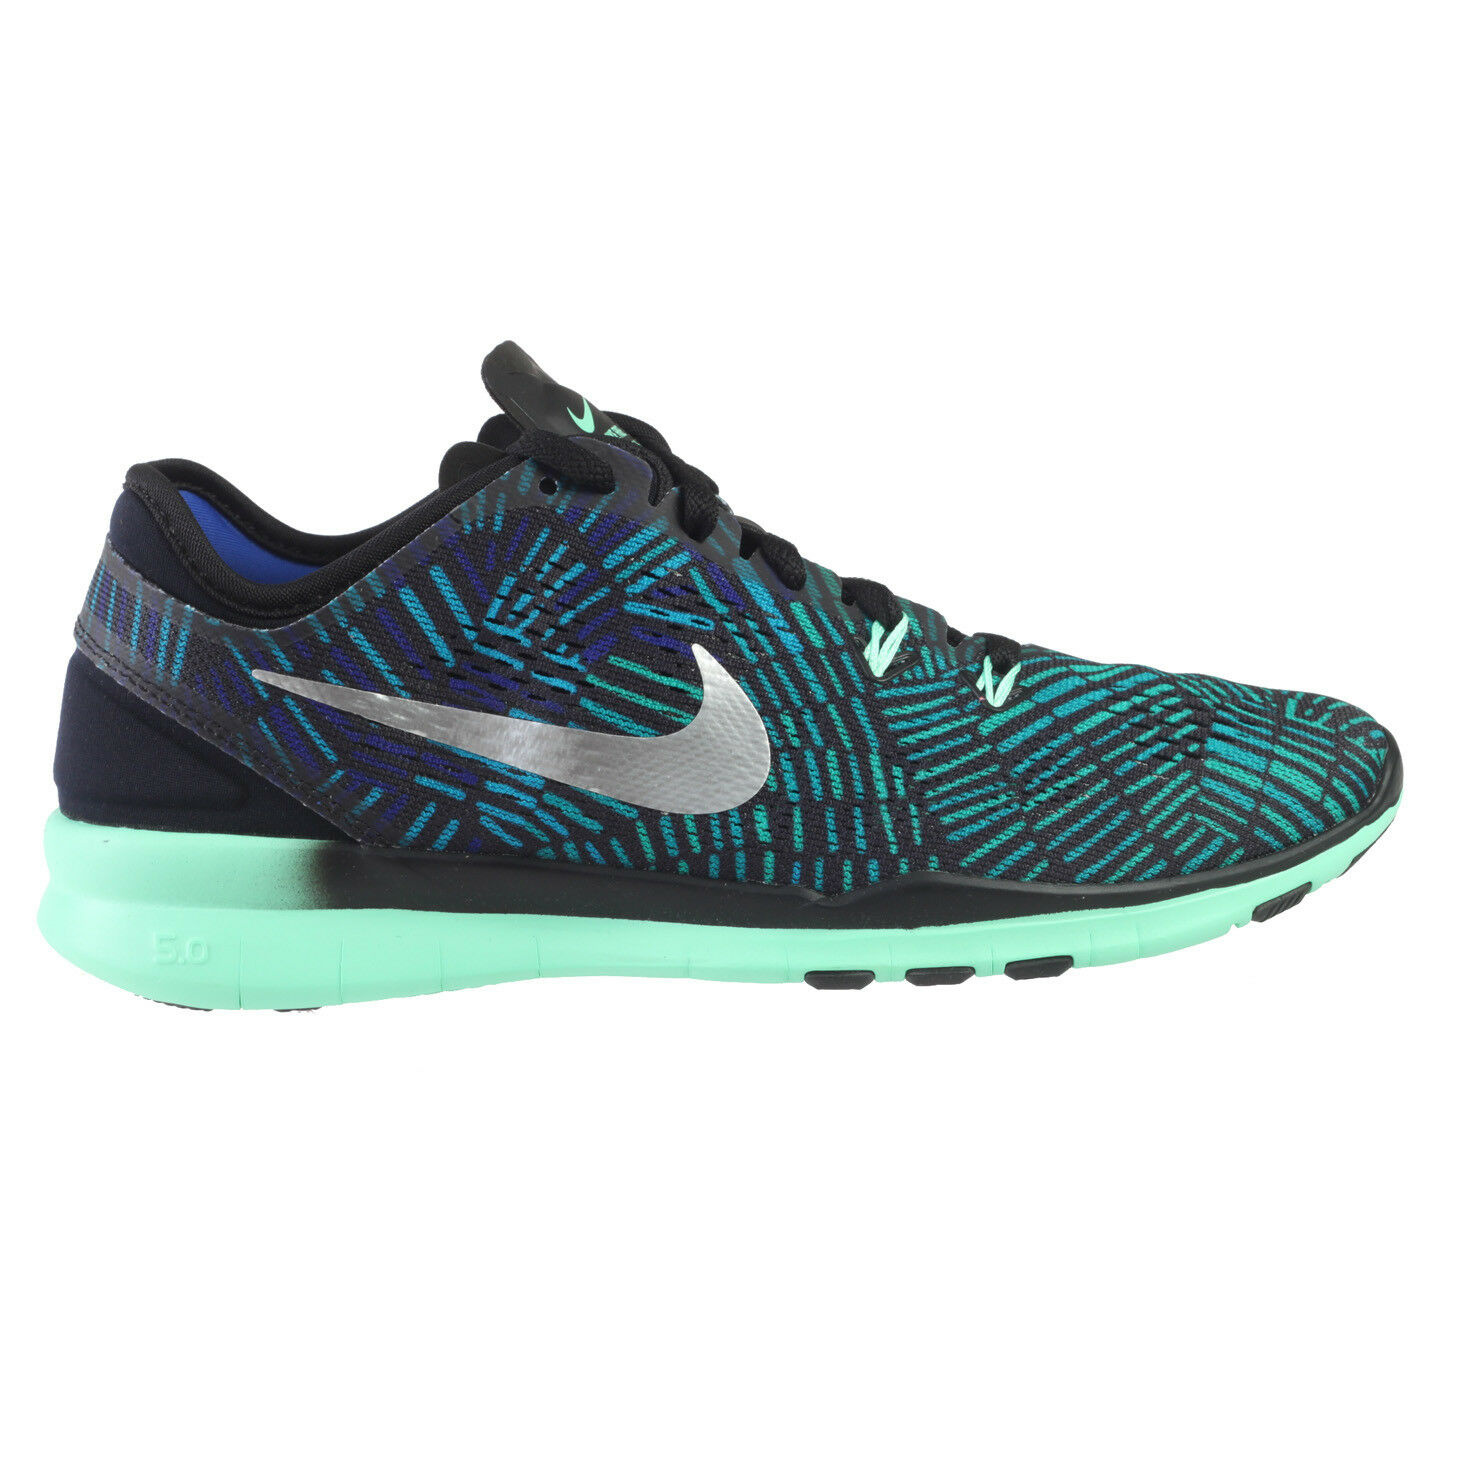 Nike Free 5.0 TR Fit 5 Prt Womens 704695-016 Green Glow Training Shoes Size 10